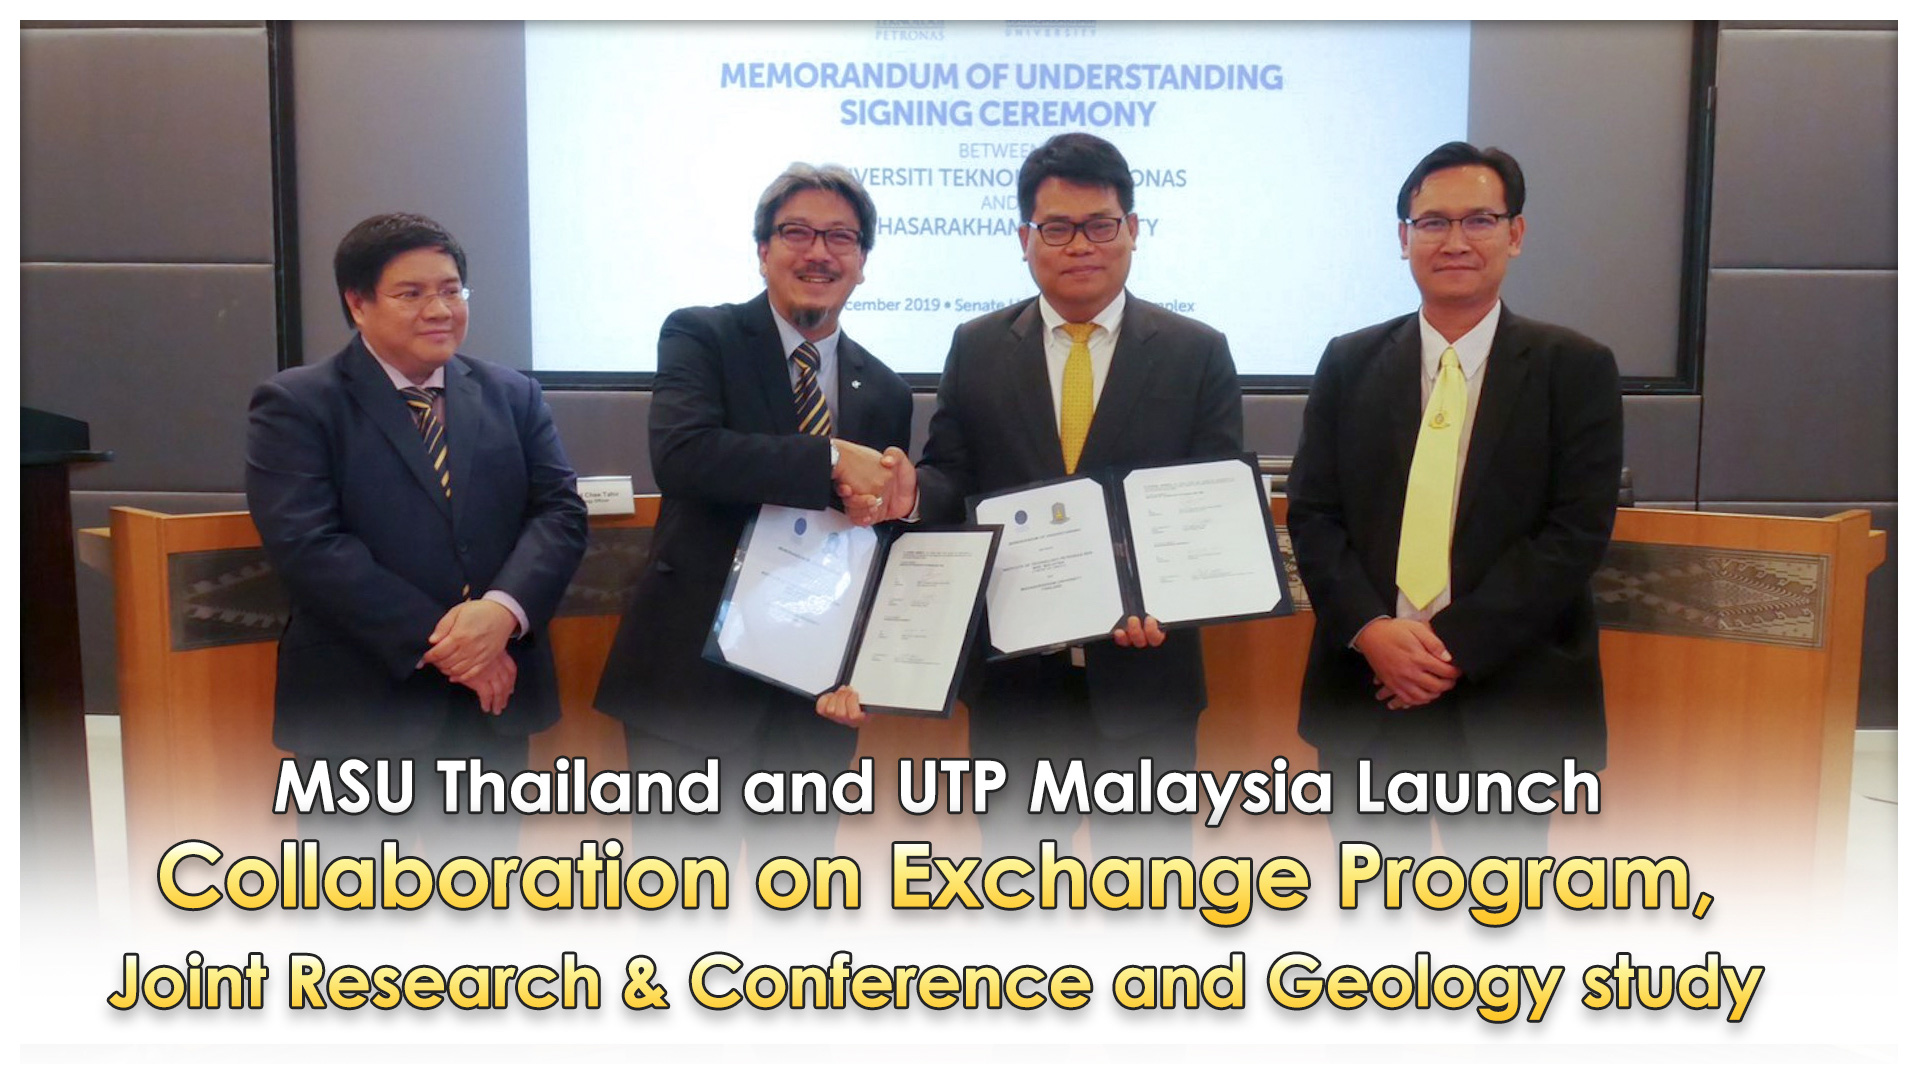 MSU Thailand and UTP Malaysia Launch Collaboration on Exchange Program, Joint Research & Conference and Geology study